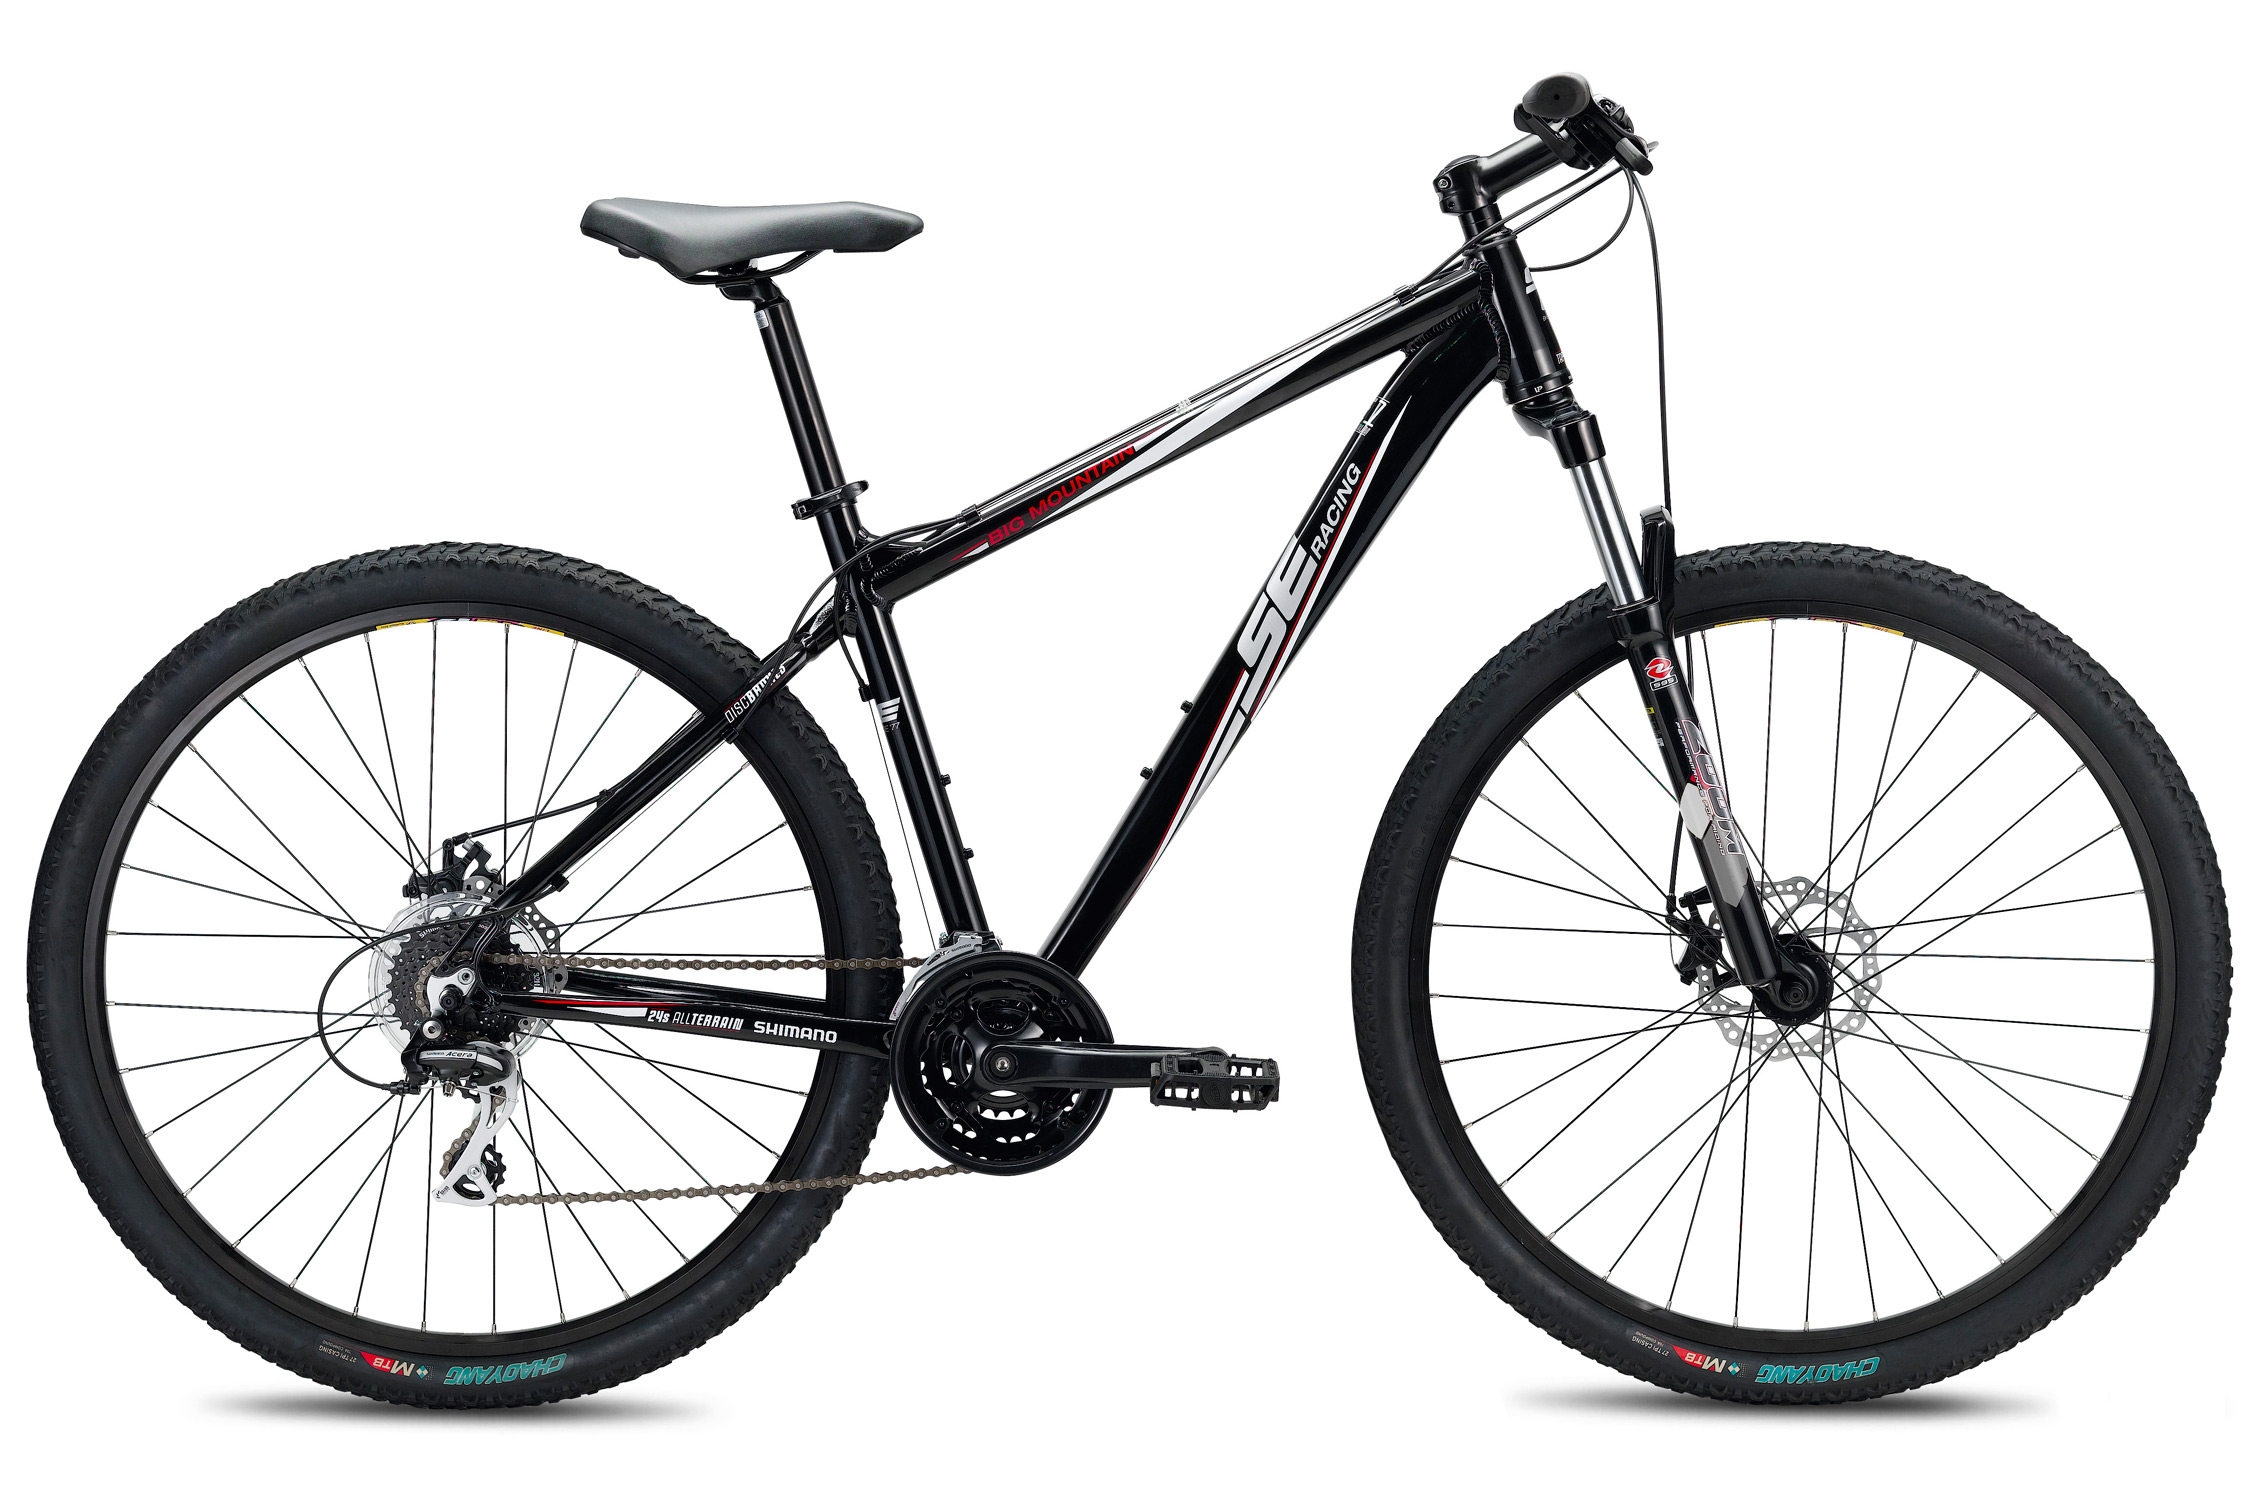 "MTB If you're looking for the benefits of 29-inch wheels but want to leave something in the bank, the Big Mountain 24 is the bike for you. We round out this power value package with 24 speeds from Shimano.Key Features of the SE Big Mountain 24 Speed Bike: Sizes: S (17"" , M (19"" , L (21""  Color(s : Black, Brown Main frame: SE 1 Double Butted alloy, semi-integrated headset, w/ 1.5"" lower bearing, double water bottle mounts Rear triangle: SE 1 alloy, w/ replaceable hanger Fork: HL 595SAMS 29"", w/ 1 1/8""-1 1/2"" steel taper steerer, 100mm travel Crankset: Wheel Top, 42/34/24T, 8-speed Bottom bracket: Cartridge Pedals: 1-piece resin body, boron axle Front derailleur: Shimano Altus, band type 34.9mm Rear derailleur: Shimano Acera, 8-speed Shifters: Shimano EF-40 EZ-Fire, 24-speed Cassette: Shimano Altus, 11-30T, 8-speed Chain: Fixed Star, 8-speed Wheelset: Weinmann ZAC 19 32H double wall rims, alloy Formula hubs, ED spokes, brass nipples, steel quick releases Tires: Evolution, 27 tpi, 29"" x 2.0"" Brake set: HL DB-280 mechanical disc, 160mm rotors Brake levers: Shimano EF-40 2-finger Headset: VP, 1 1/8""- 1 1/2"" w/ caged bearings Handlebar: Steel, 30mm rise, 6d sweep, 25.4mm clamp Stem: Steel, 25.4mm,  /- 20d Tape/grip: Kraton rubber, closed end Saddle: SE w/ foam padding, steel rails Seat post: Alloy, 31.6mm x 300mm - $359.95"